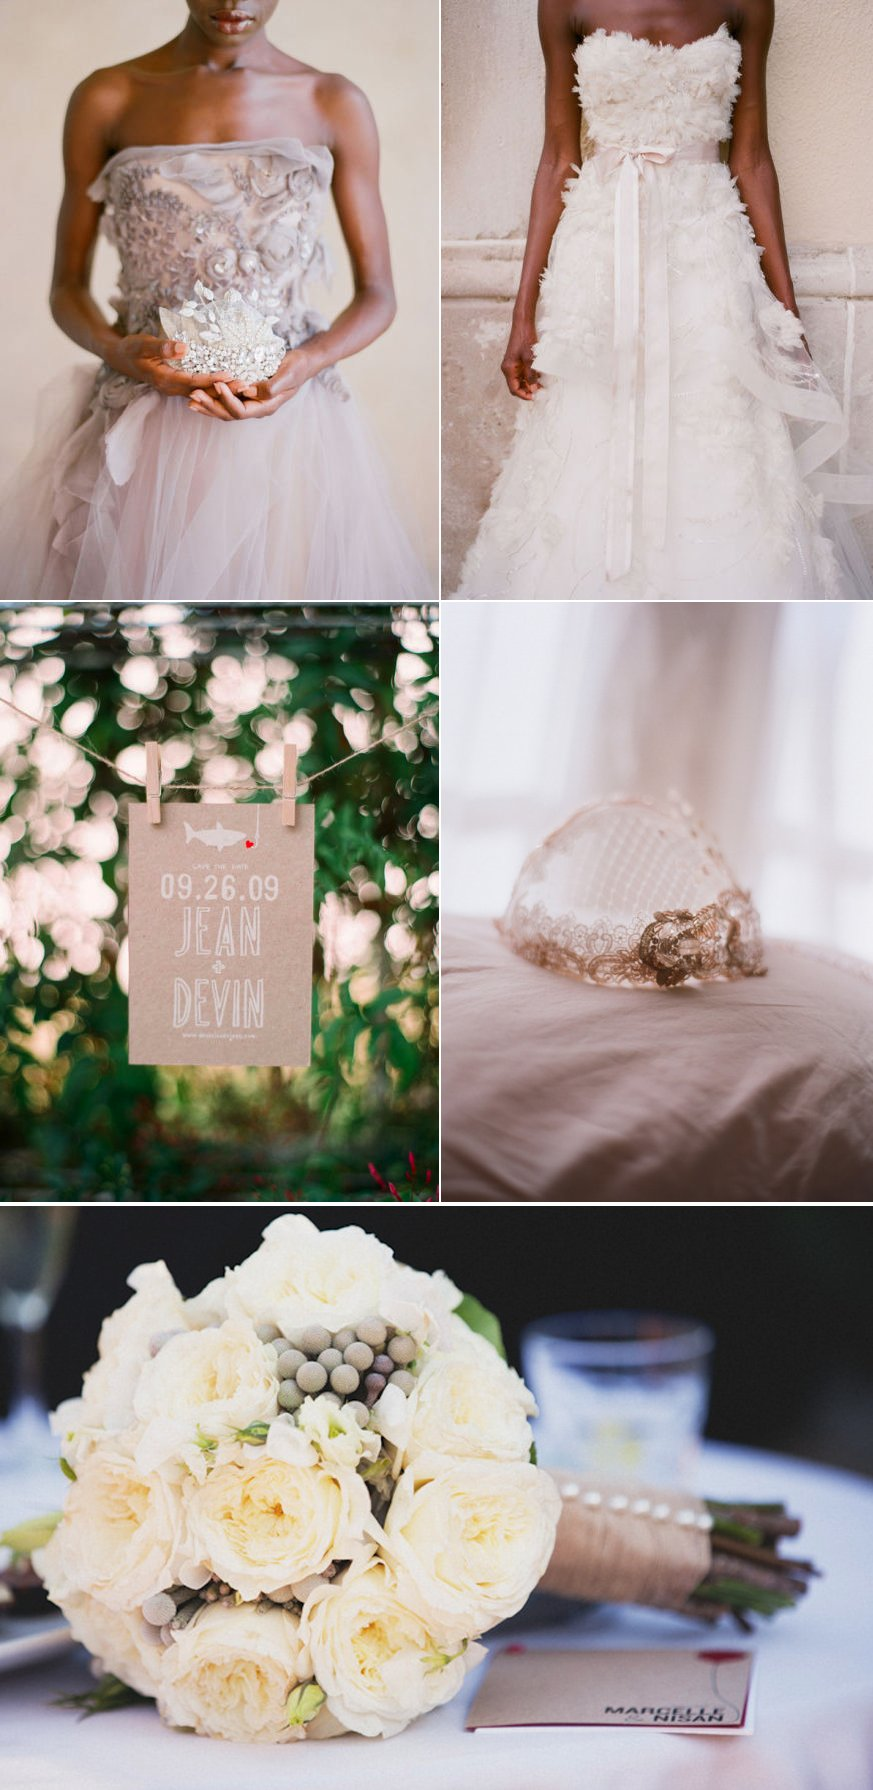 Elegant-wedding-colors-neutrals-ivory-bridal-bouquet-vera-wang-wedding-dresses.full